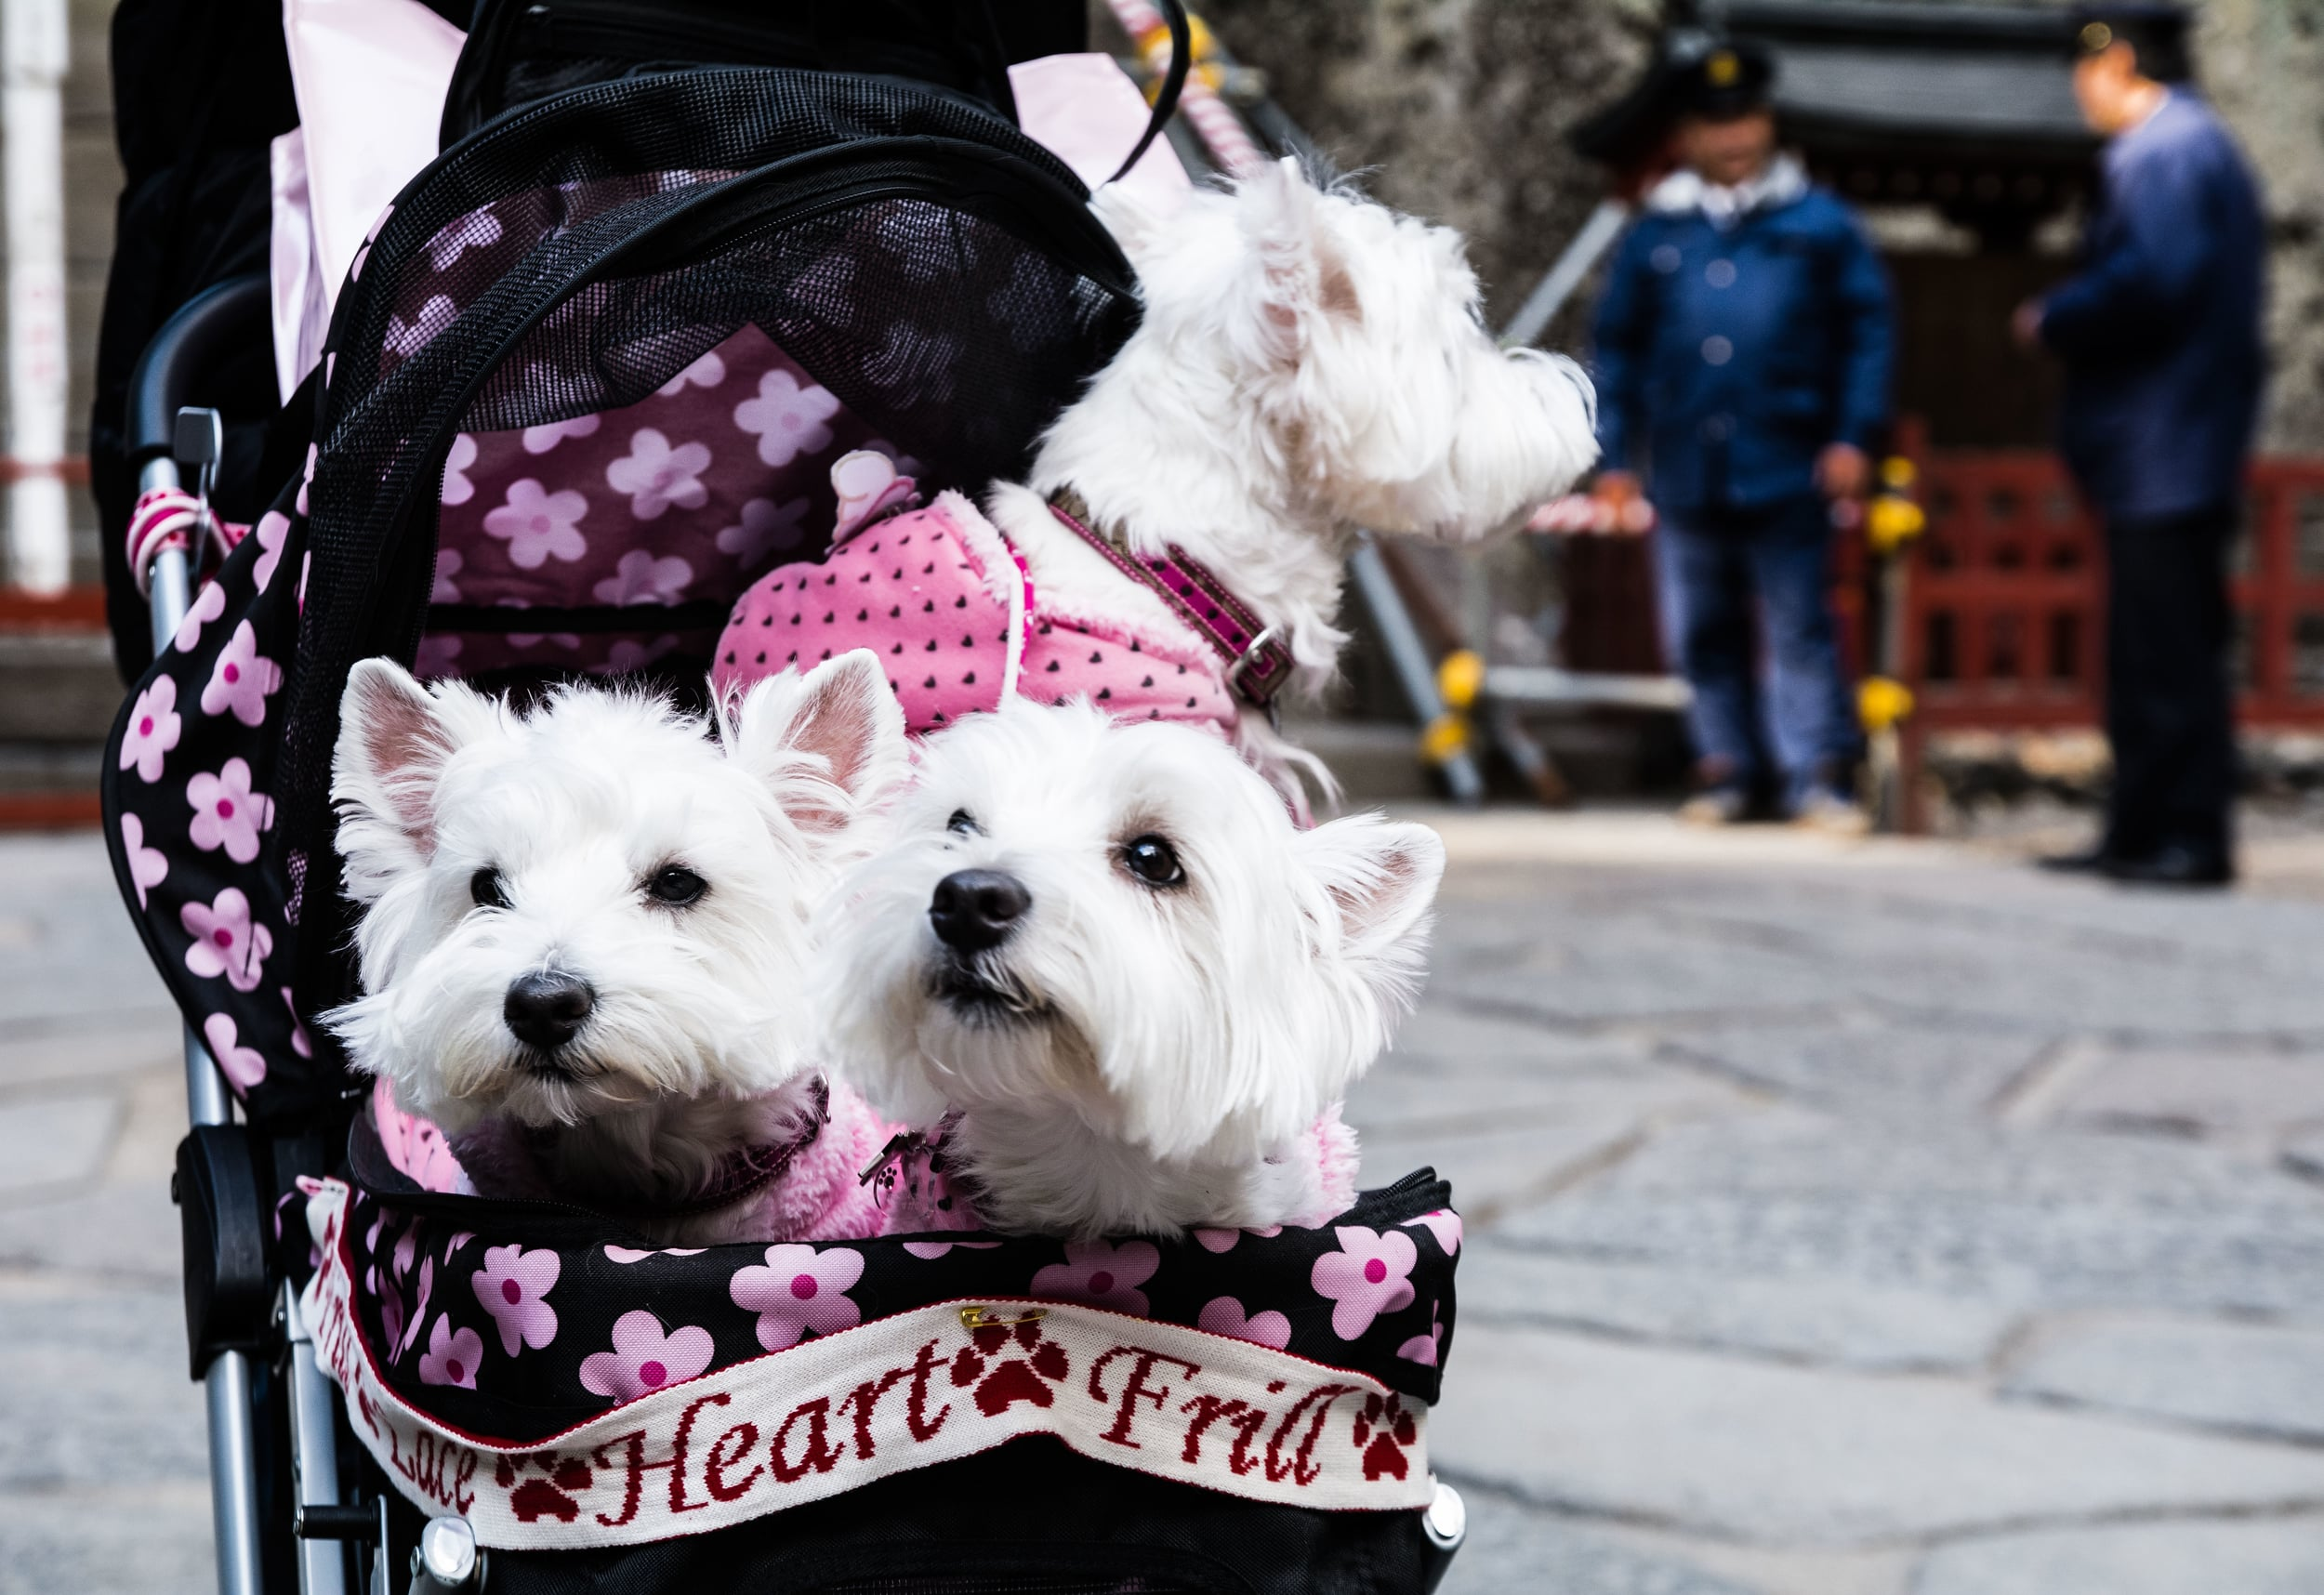 Pups in a baby carriage